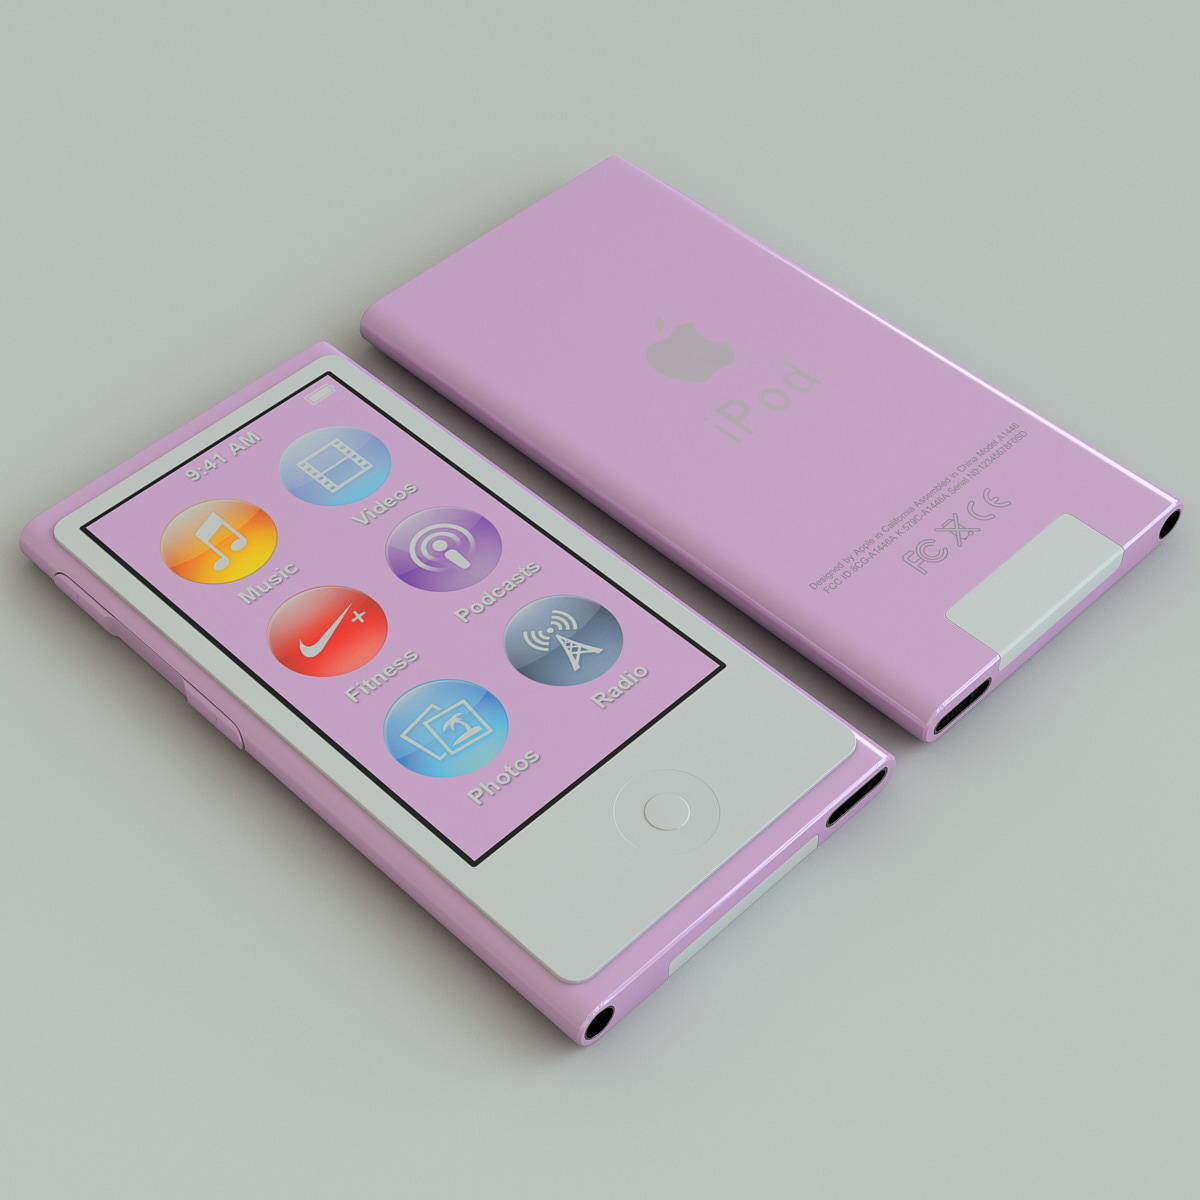 Ipod_Nano_Generation_7th_Pink_004.jpg